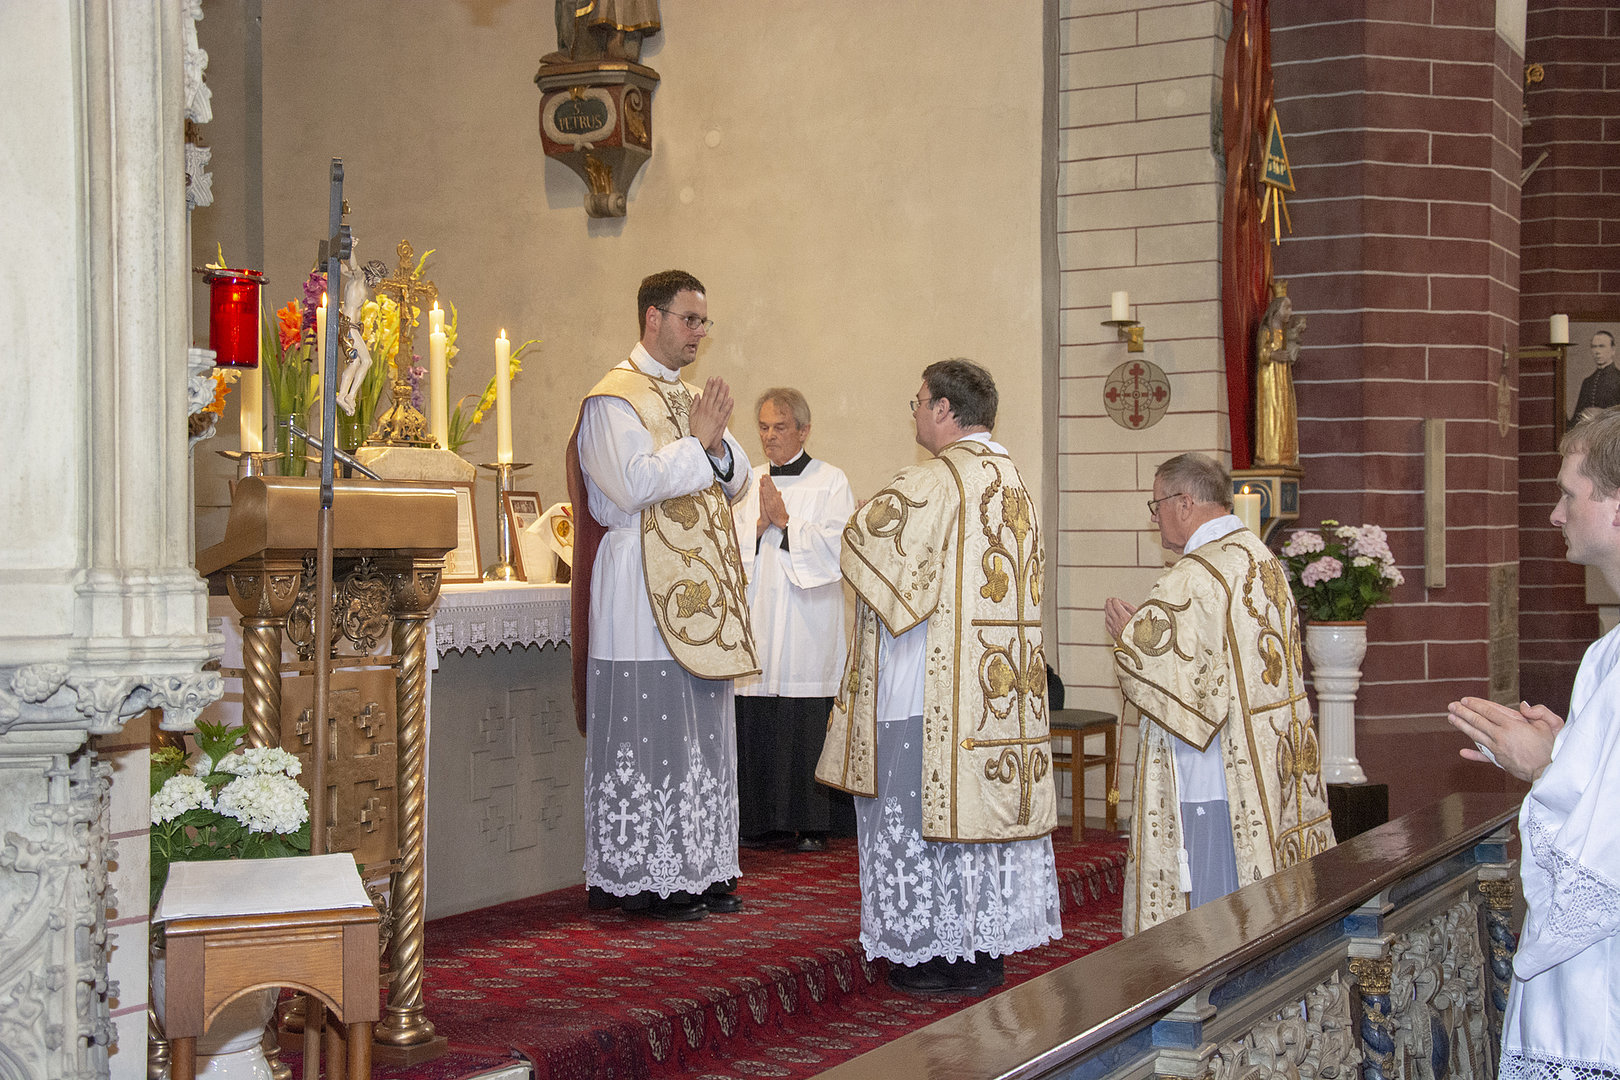 Solemn High Mass in Paderborn